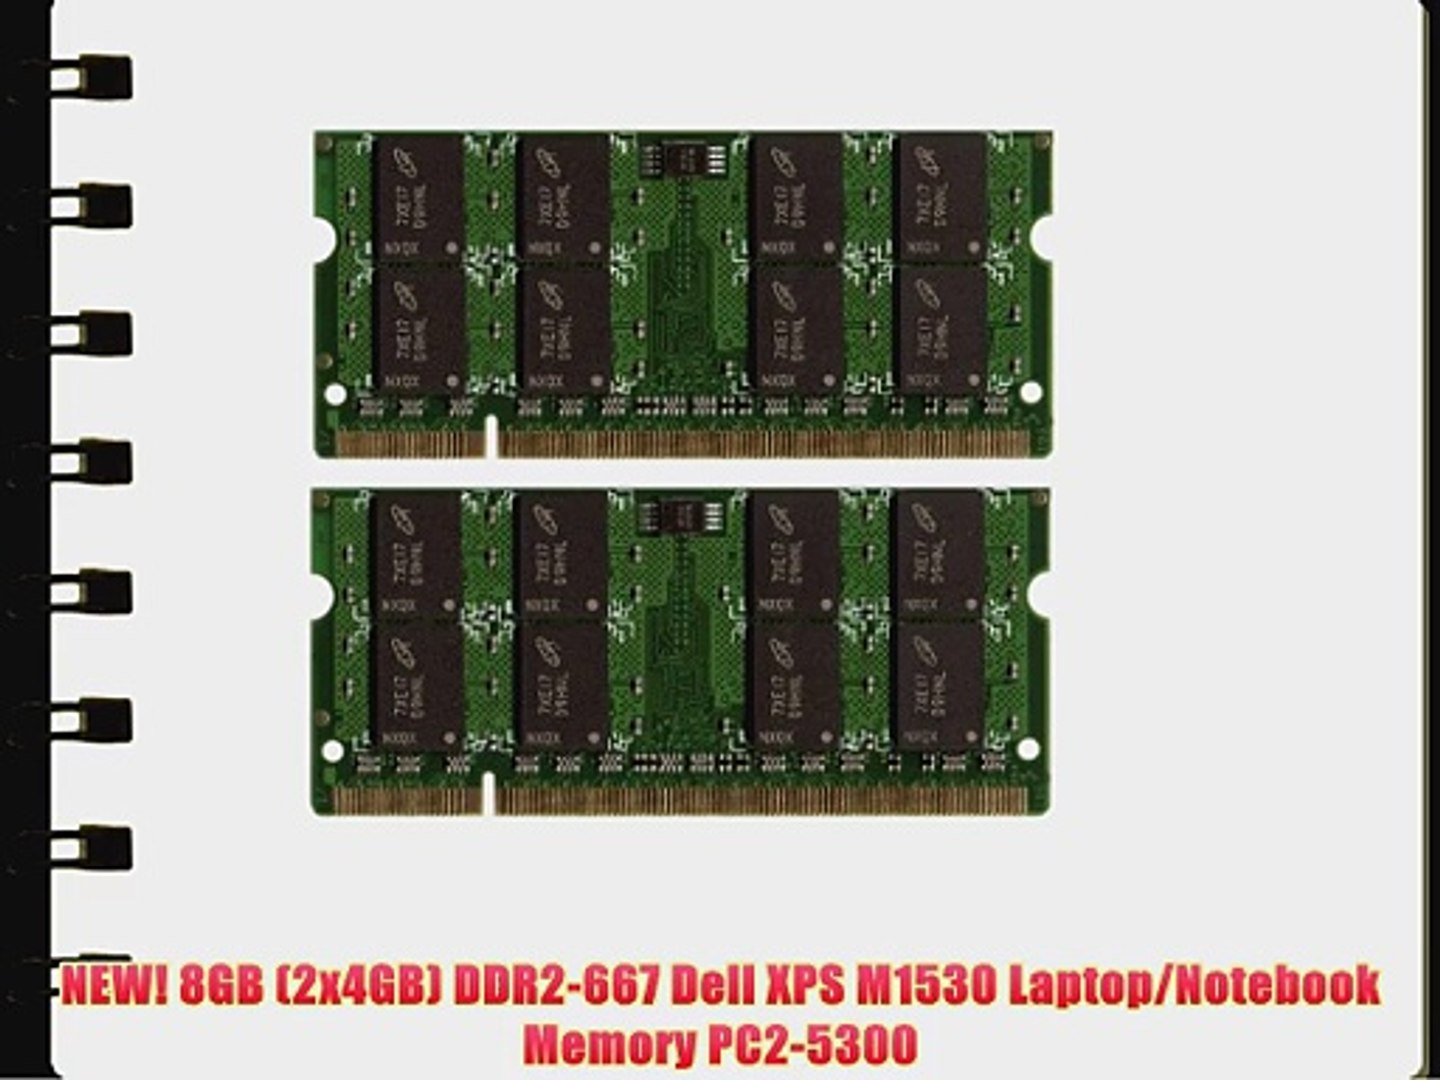 NEW! 8GB (2x4GB) DDR2-667 Dell XPS M1530 Laptop/Notebook Memory PC2-5300